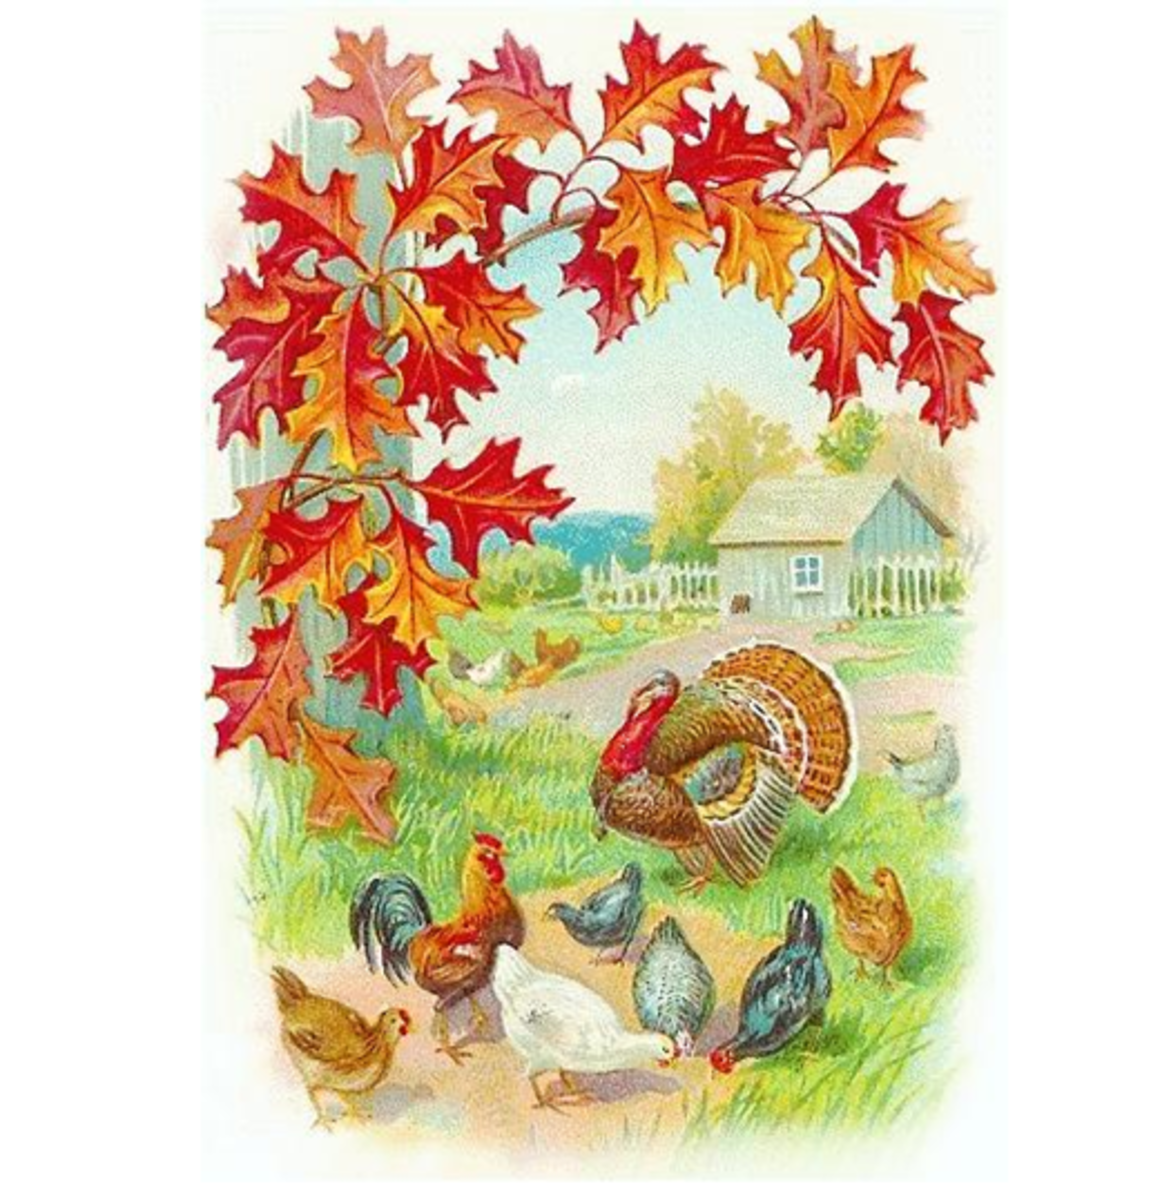 Turkey with Barnyard Chickens